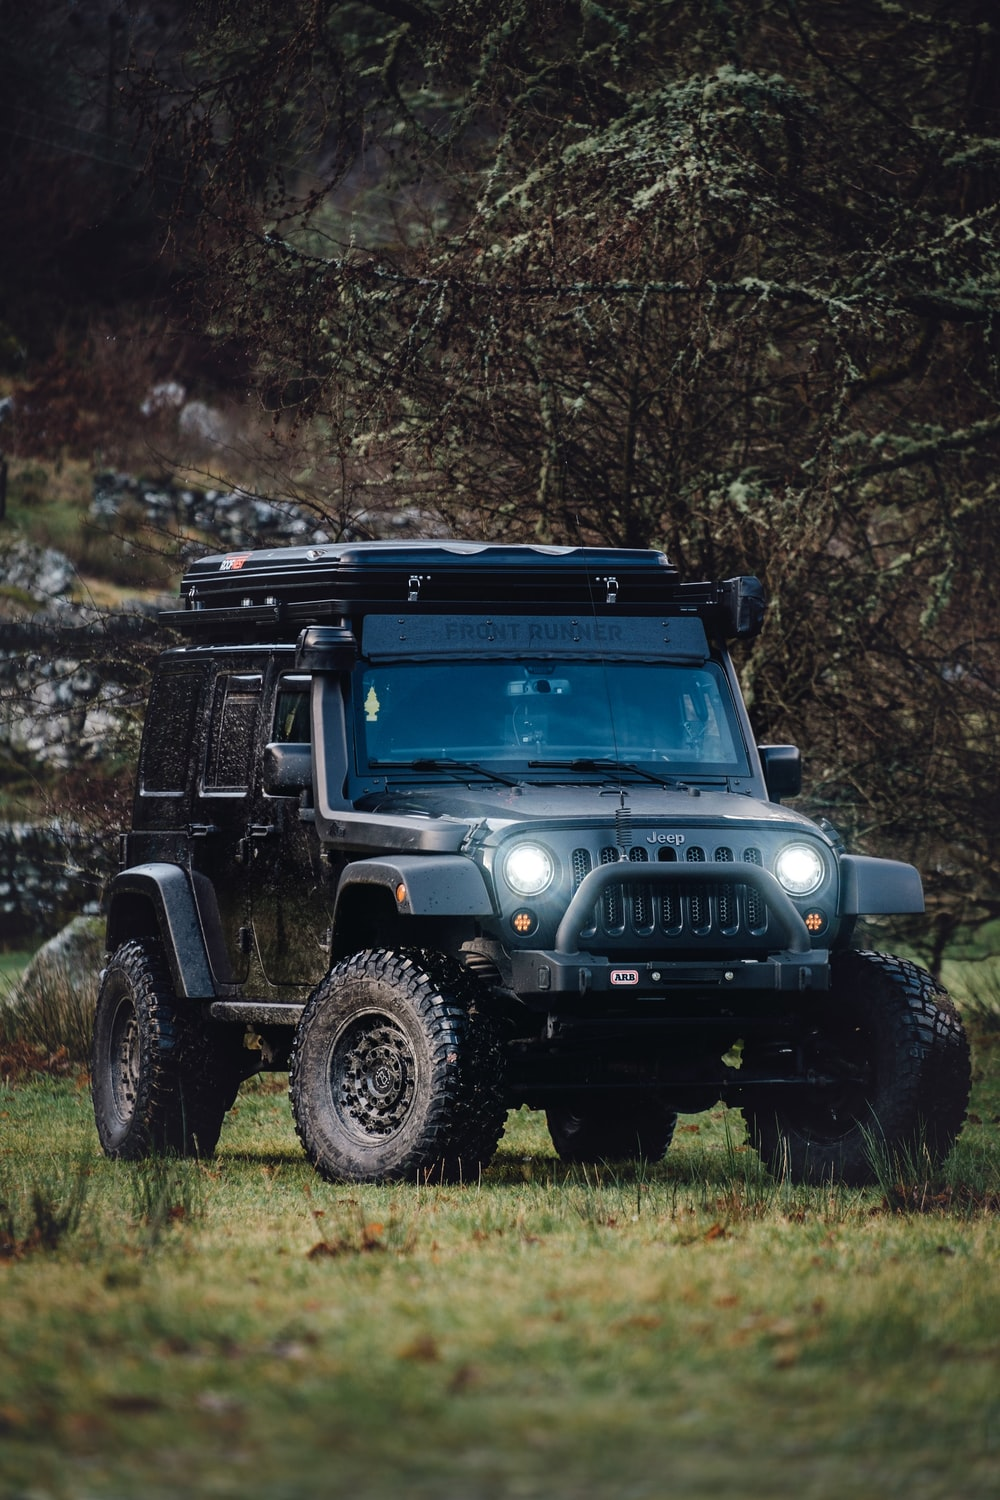 black Jeep Wrangler SUV